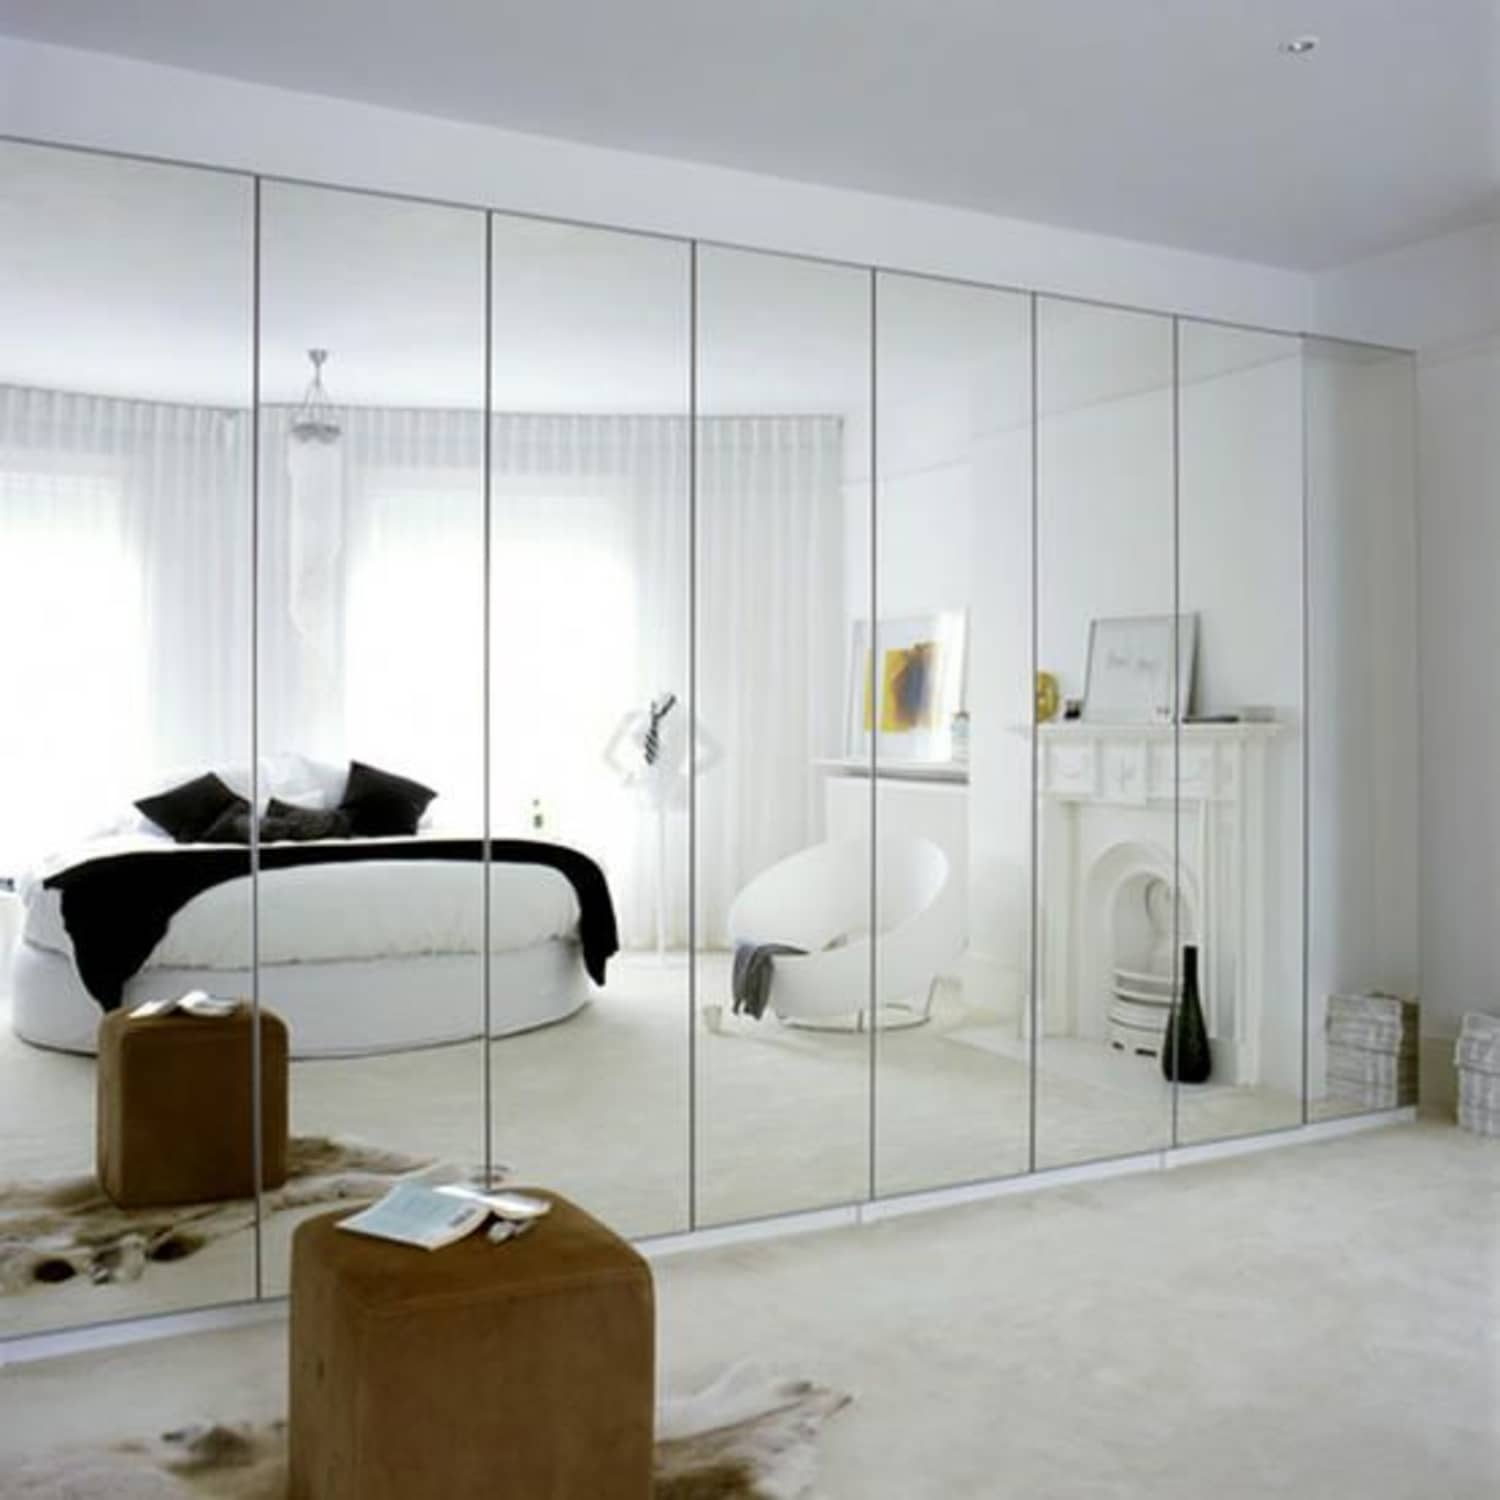 Plagued With Dated Mirrored Walls? 5 Design Ideas to Make ...